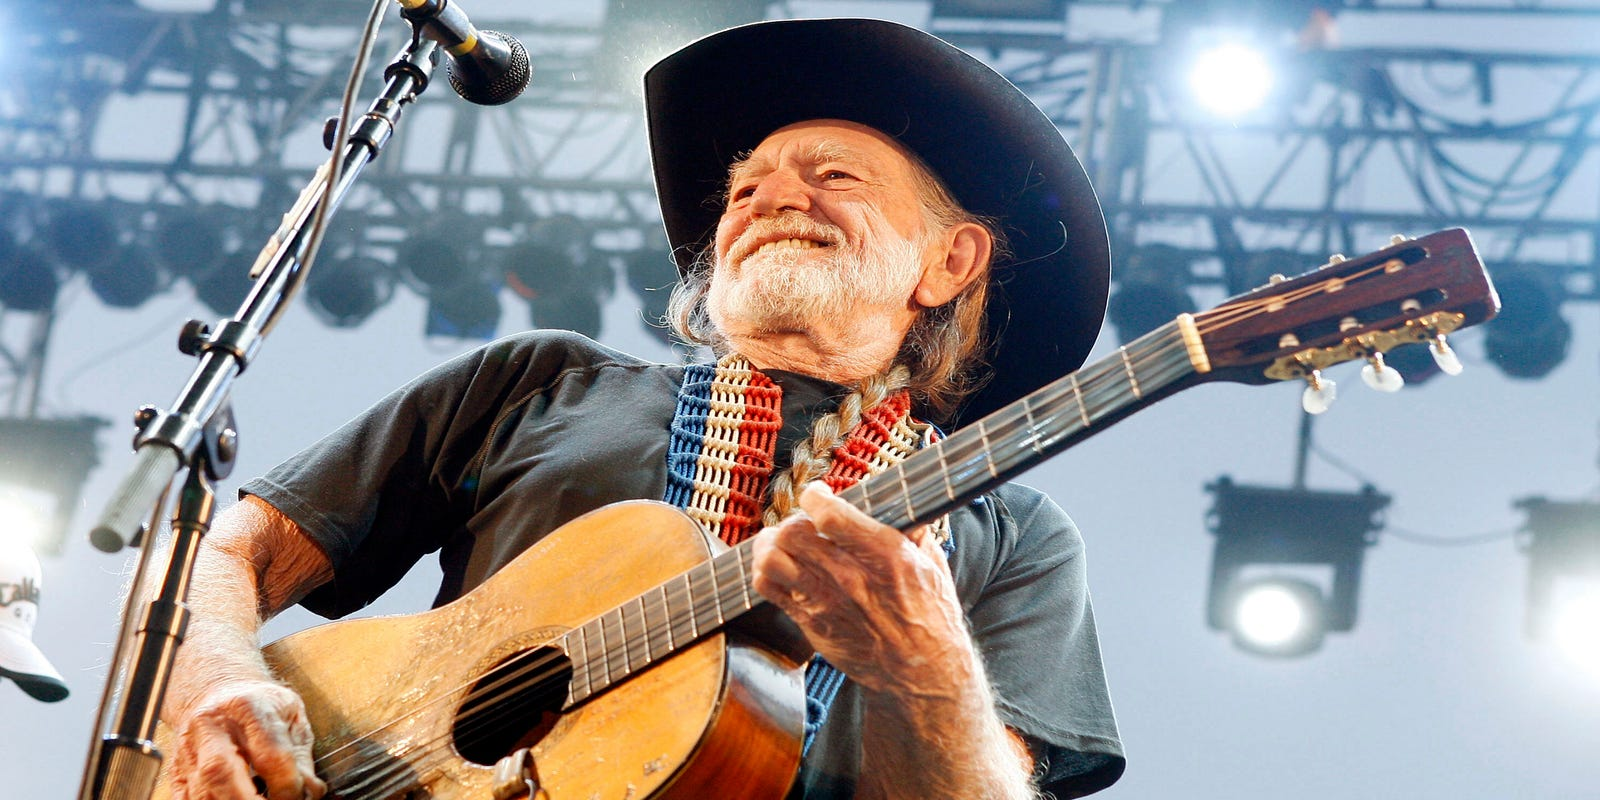 Update: Willie Nelson sidelined by health issue, but Indiana show remains on his schedule